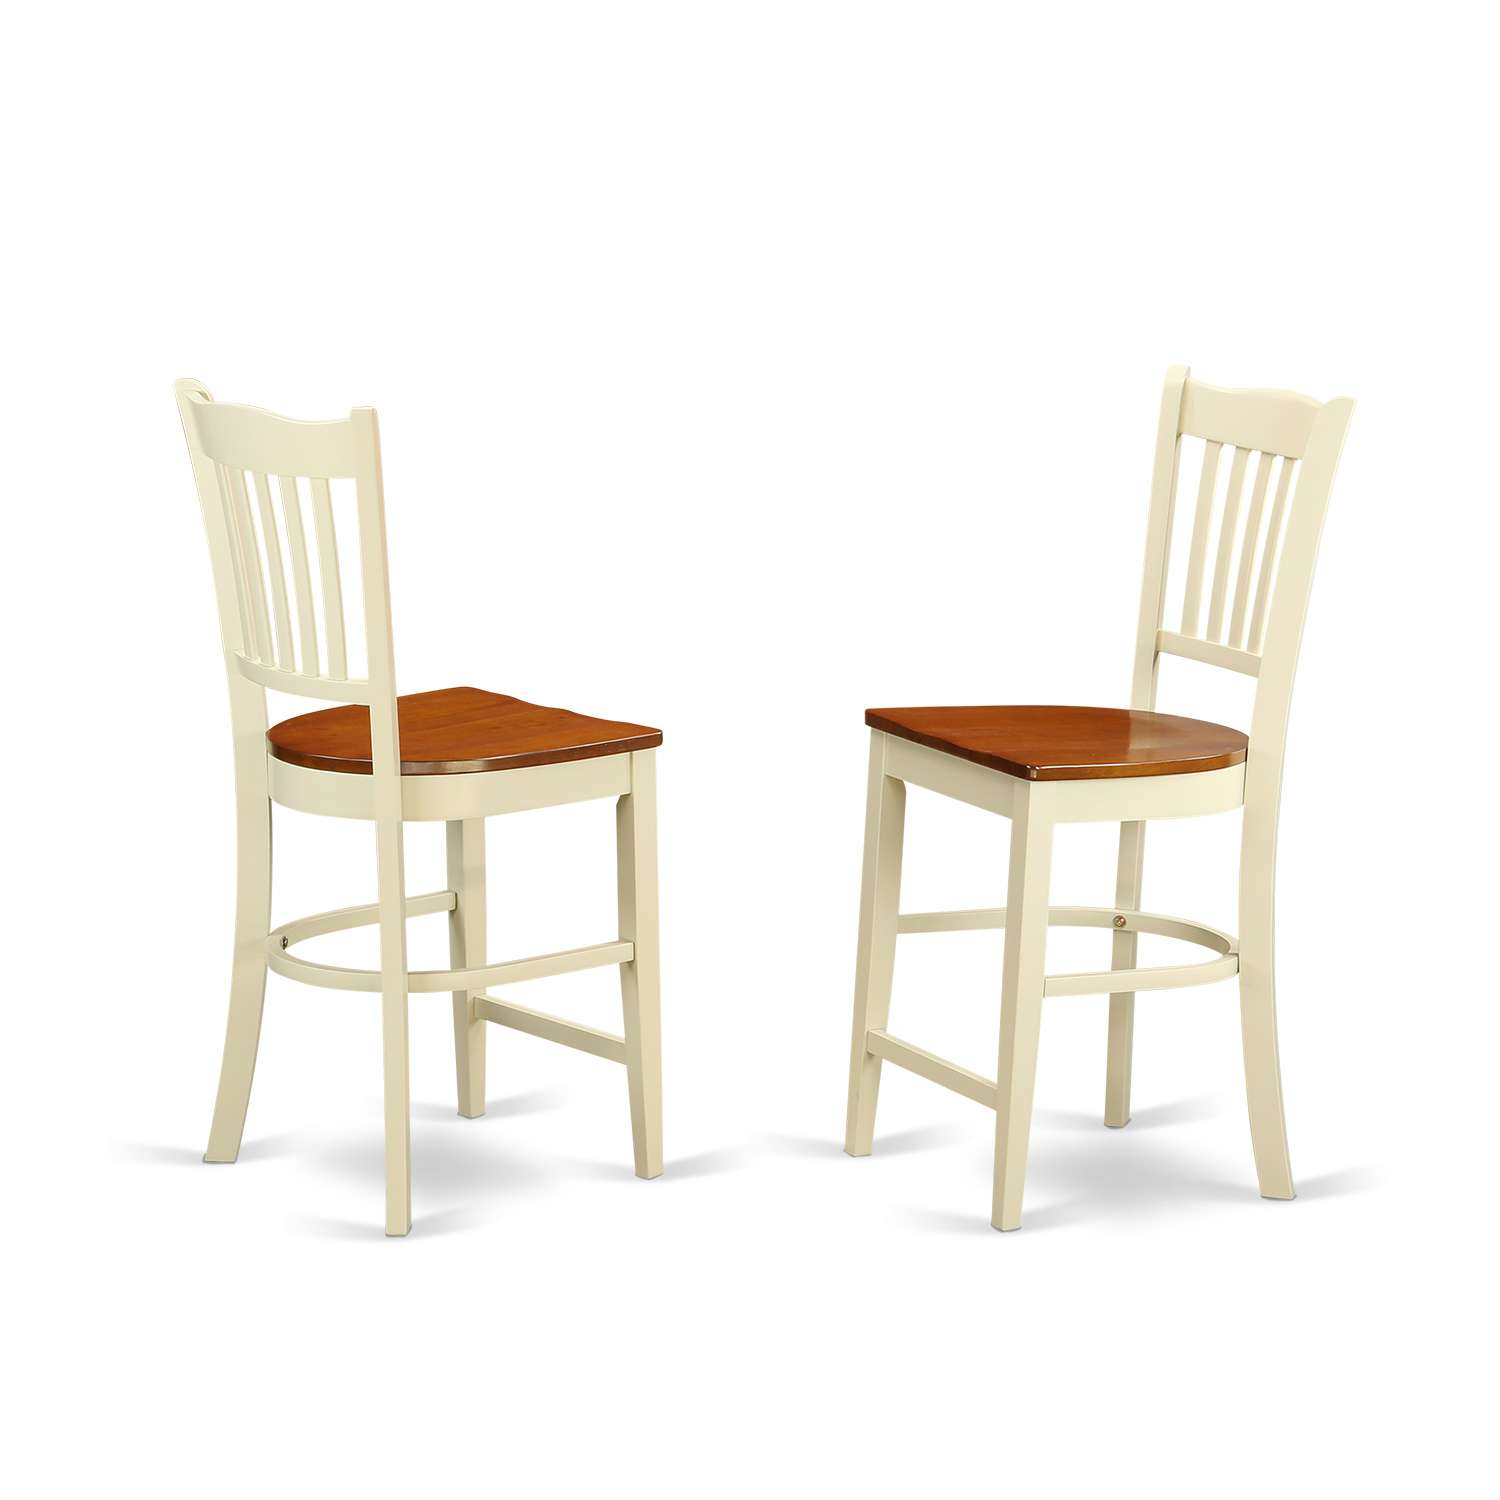 East West Furniture Gronton Counter Stools With Wood Seat